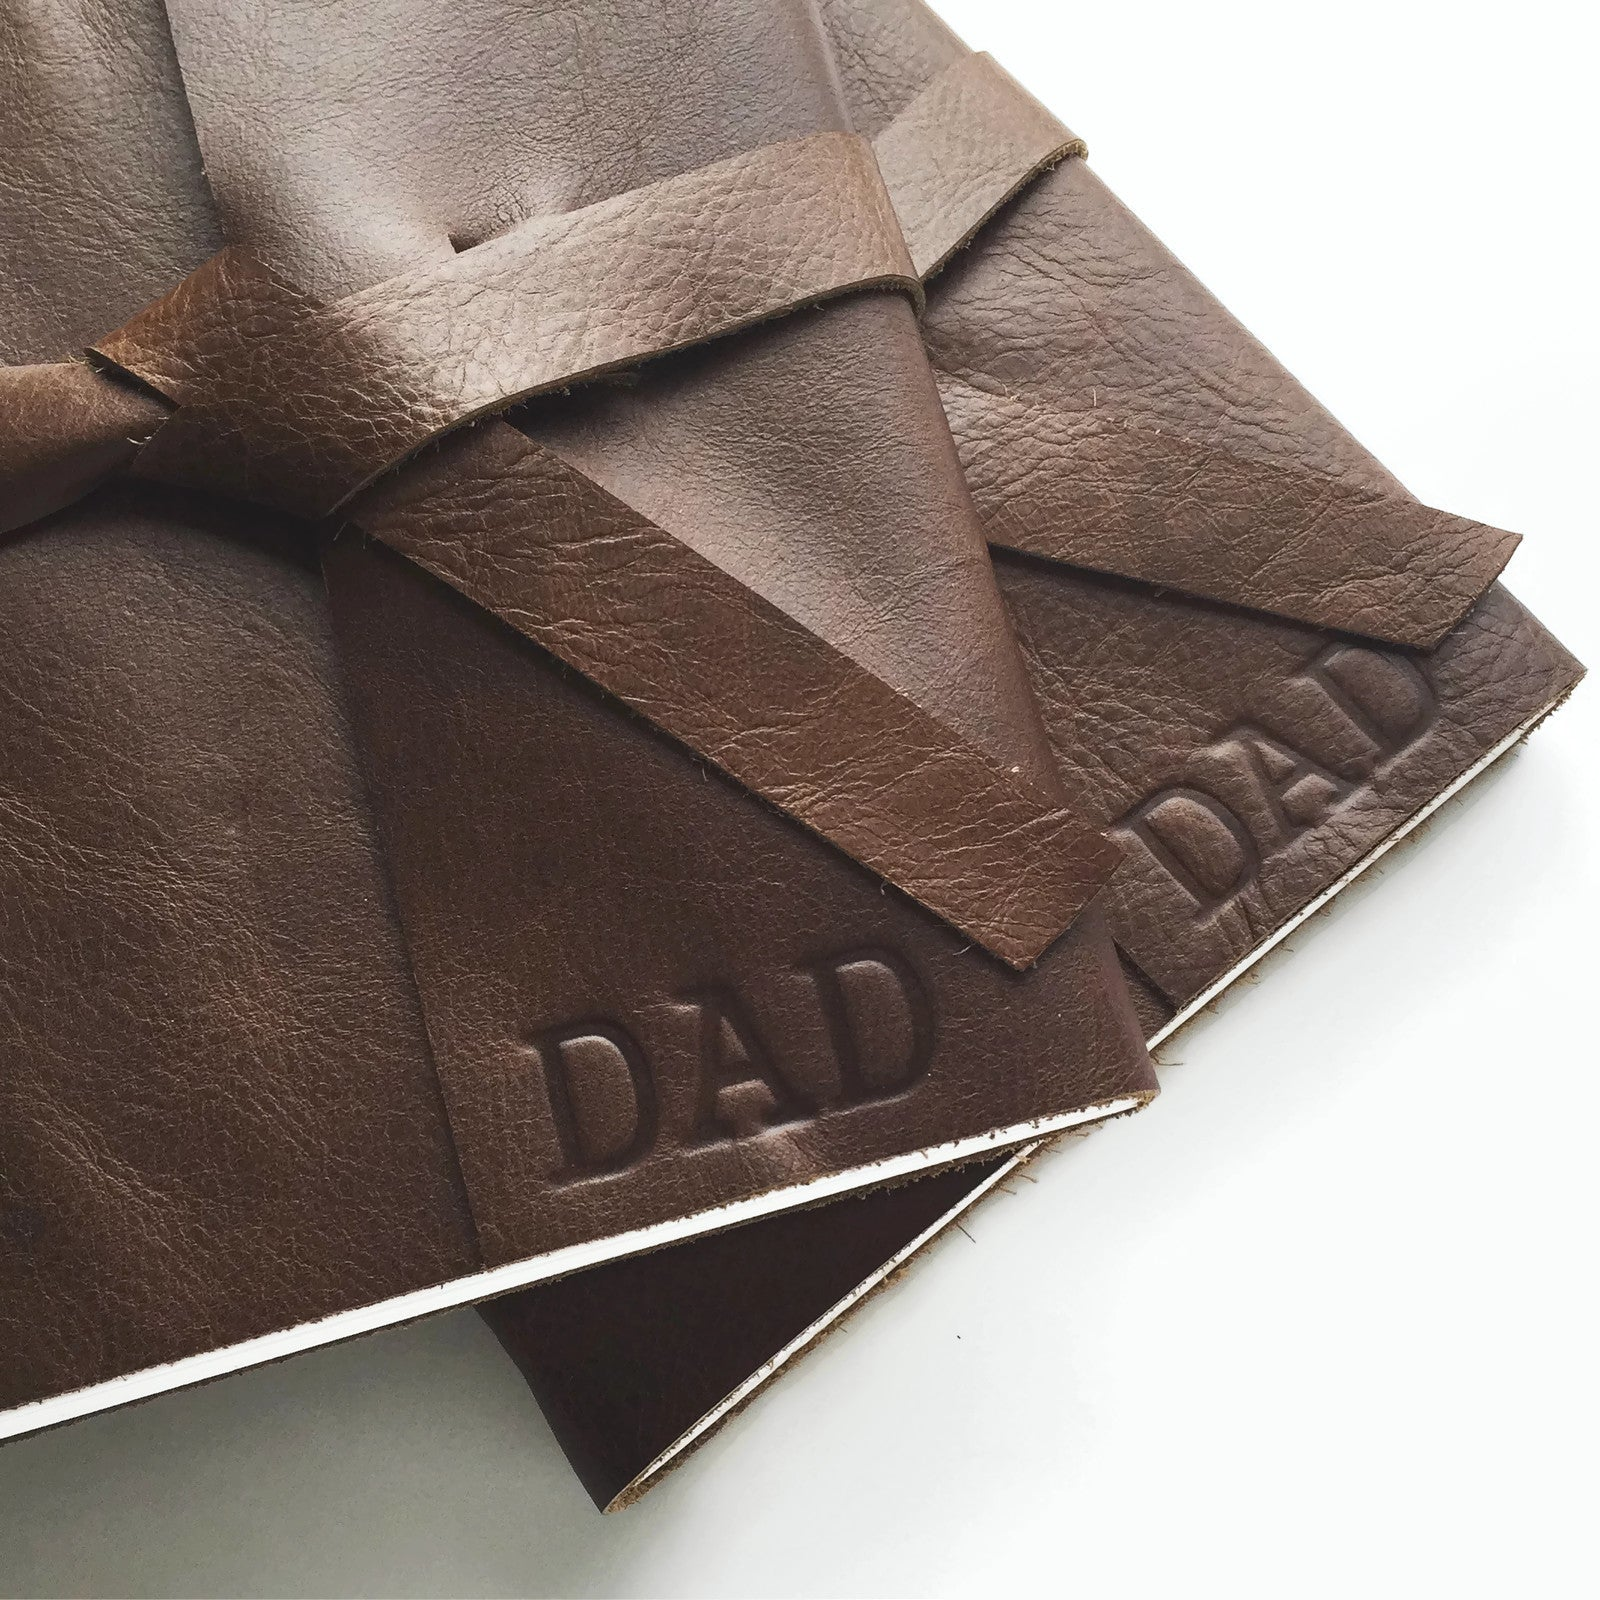 Father's Day Classic Leather Journal, 192 pages, Build Your Own